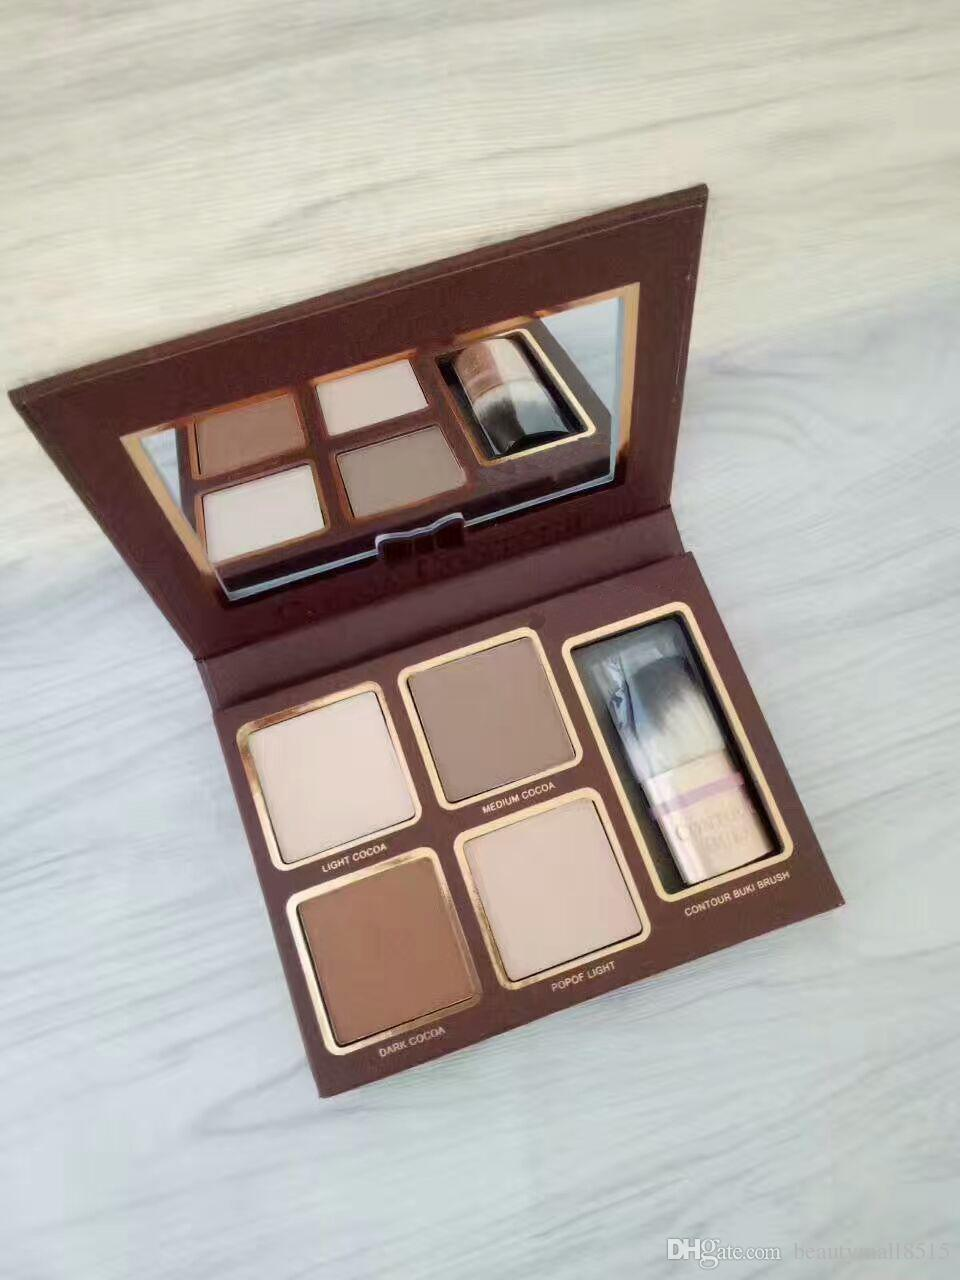 Factory Sale Brand New Cosmetics Cocoa Contour Palette Face Contouring & Highlighting Kits Wholesale Natural Bronzer Shading Makeup Free DHL